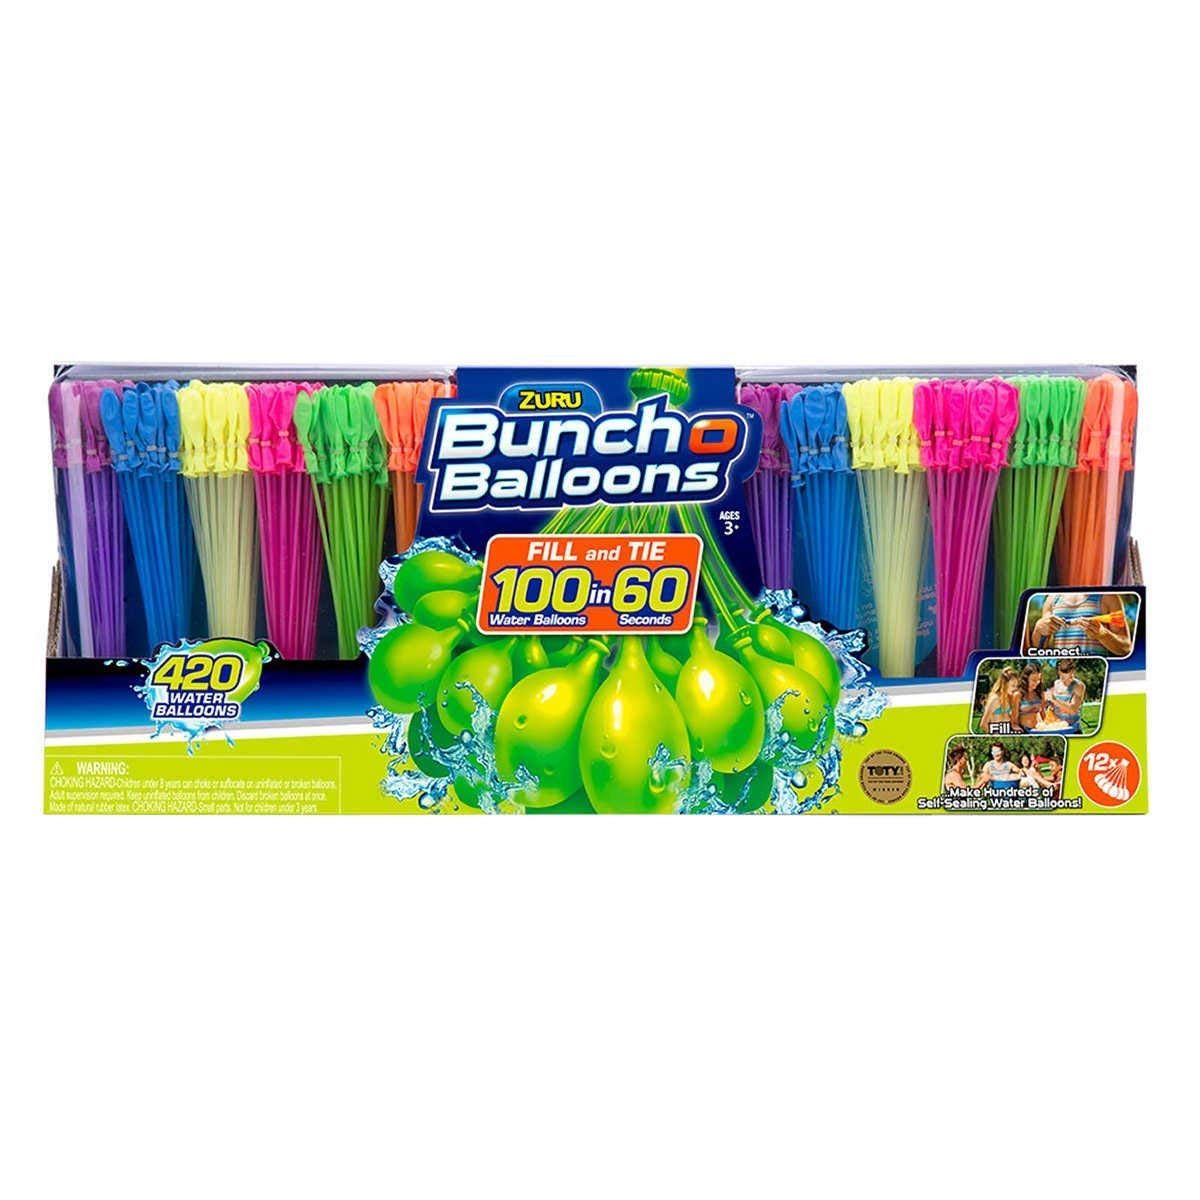 Water Balloons - Bunch of Balloons Rapid Refill 12 Pack (420 Balloons) by Bunch O Balloons